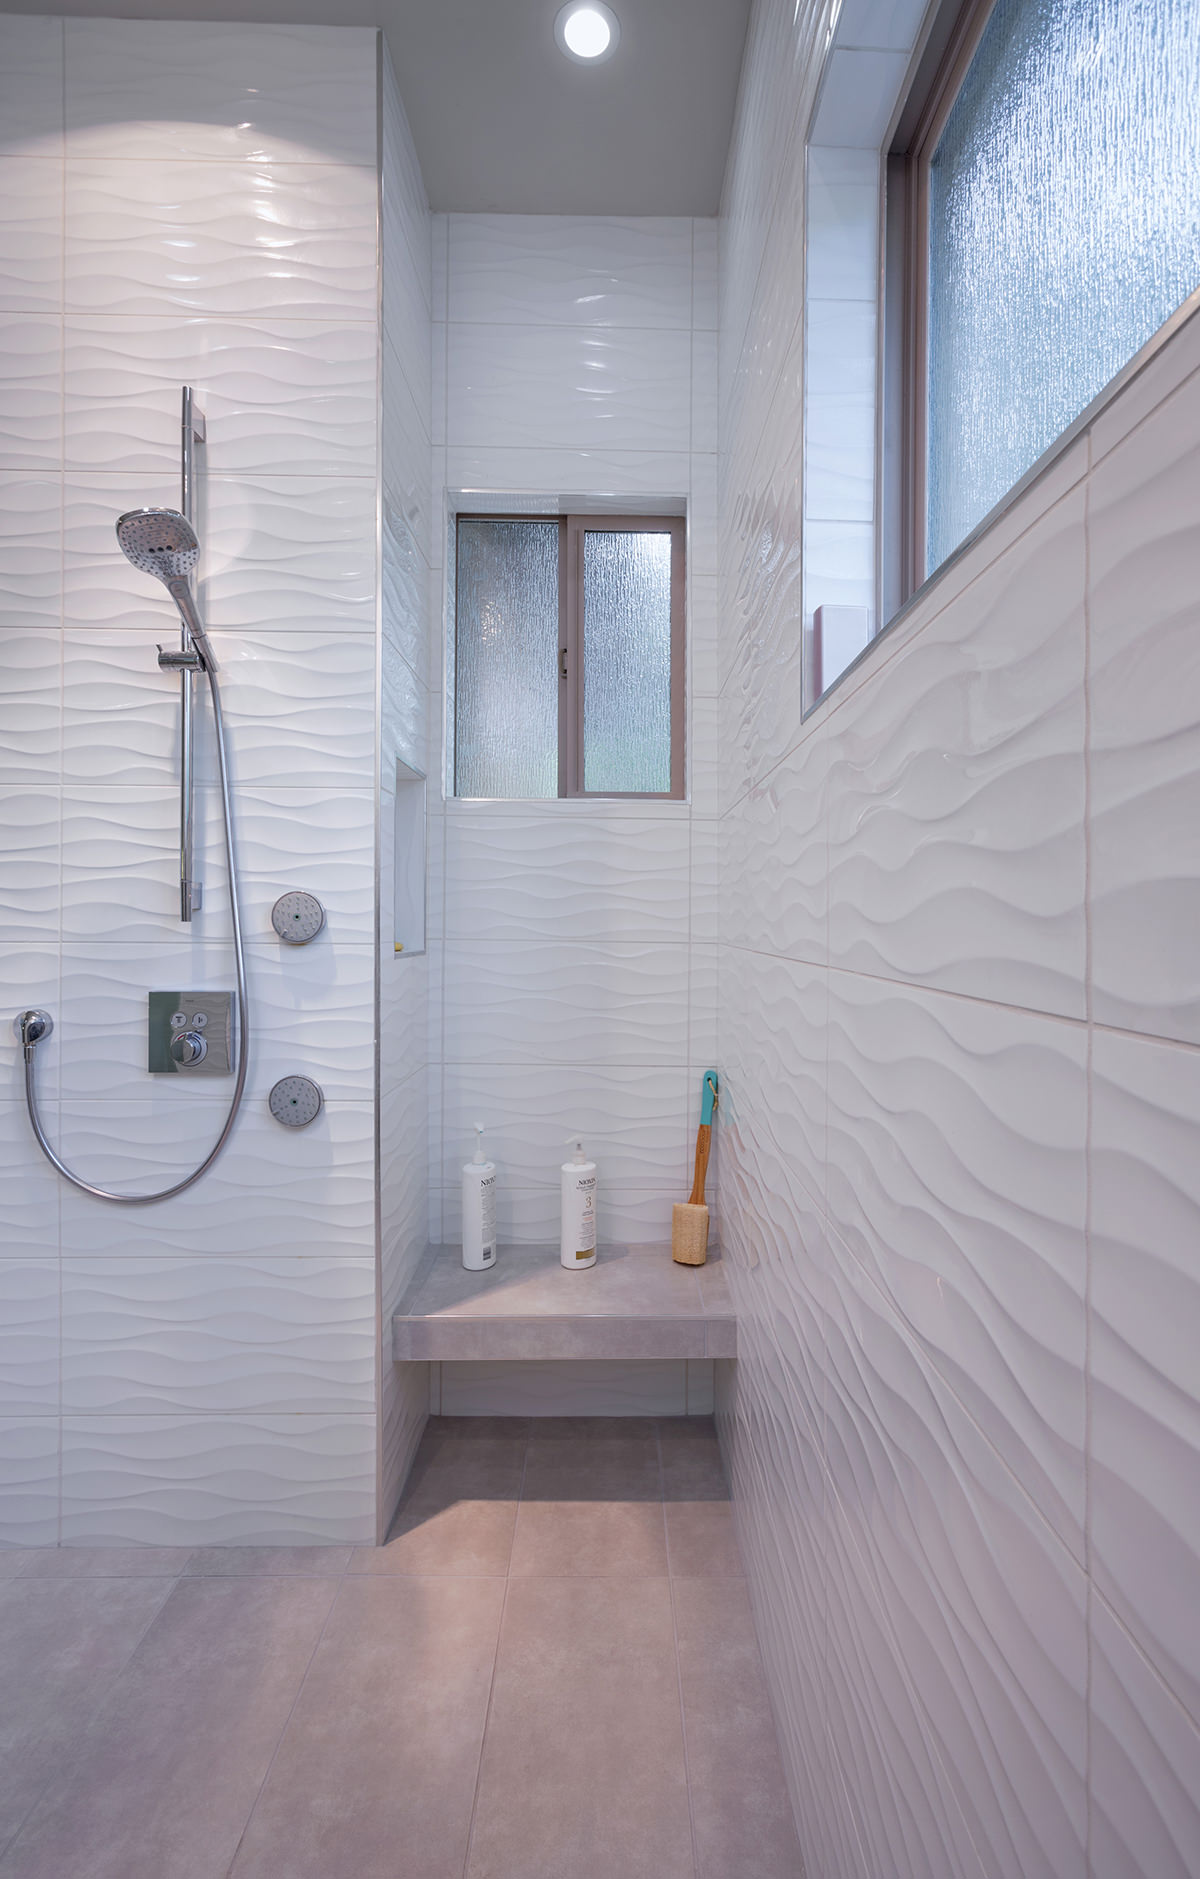 bathroom-interior-design-los-altos-california-ktj-design-co-6.jpg